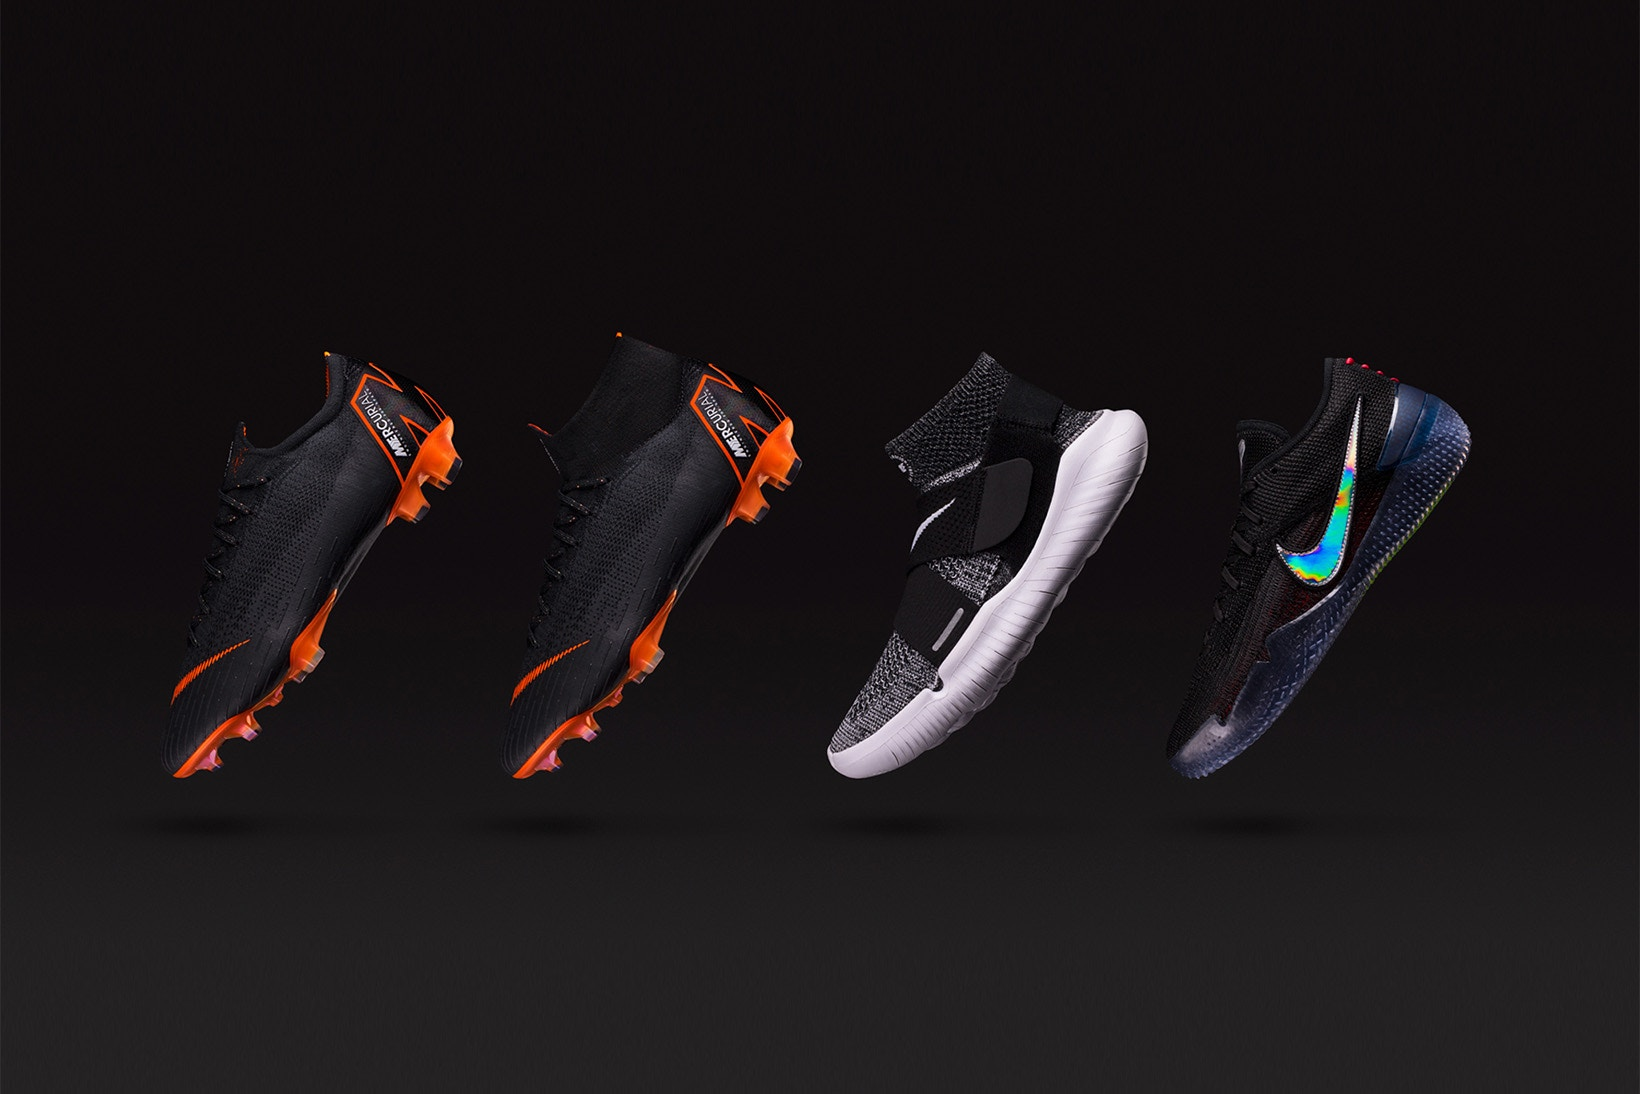 timeless design 02c96 33051 Nike Unveil The Next-Generation of Flyknit Technology